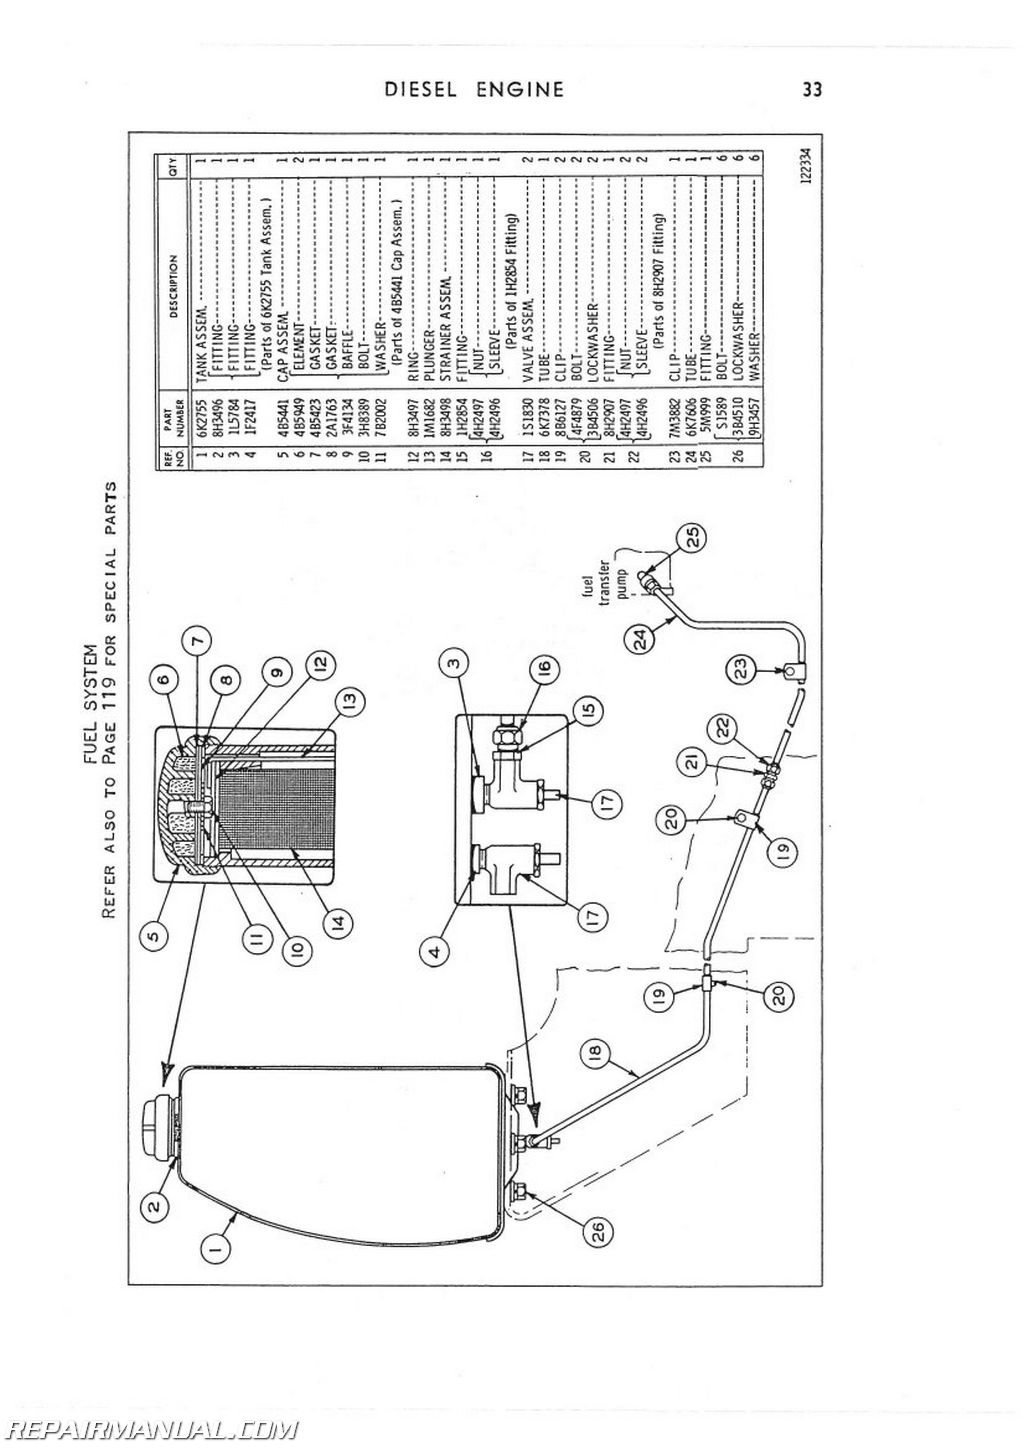 Caterpillar Filter Schematics